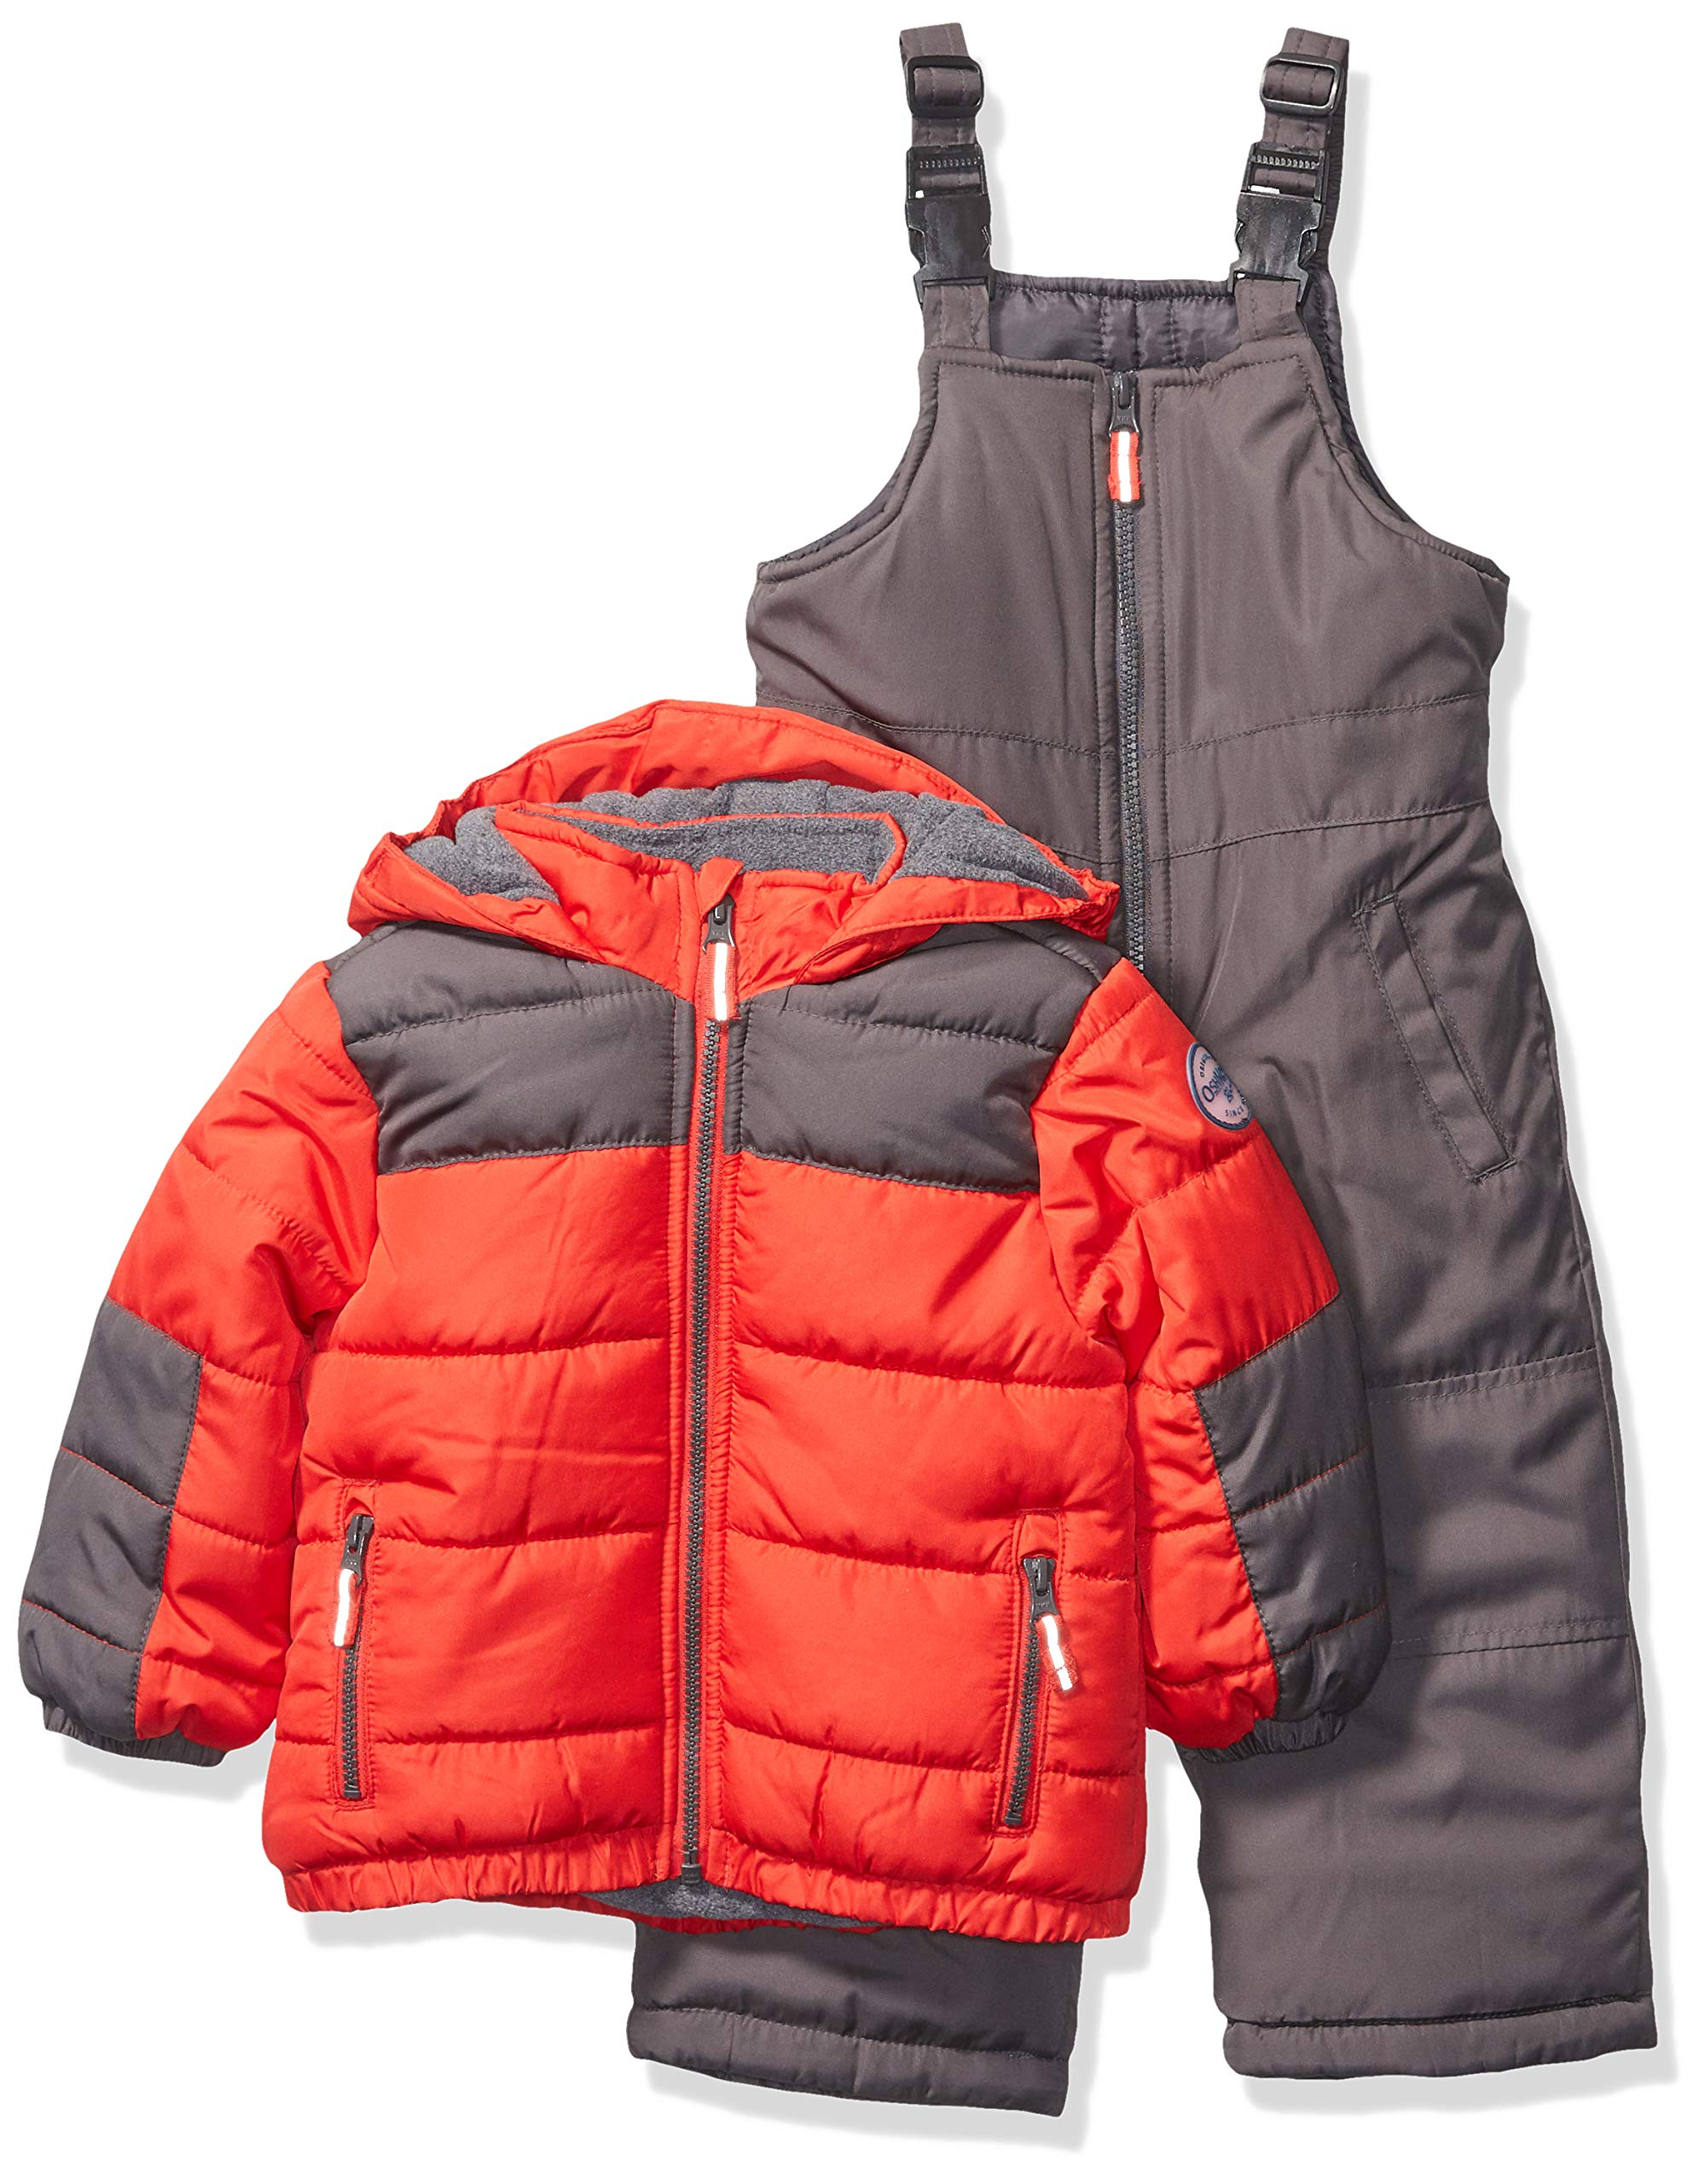 Osh Kosh Boys' Toddler Ski Jacket and Snowbib Snowsuit Set, Red Alert/New Carbon, 3T by OshKosh B'Gosh